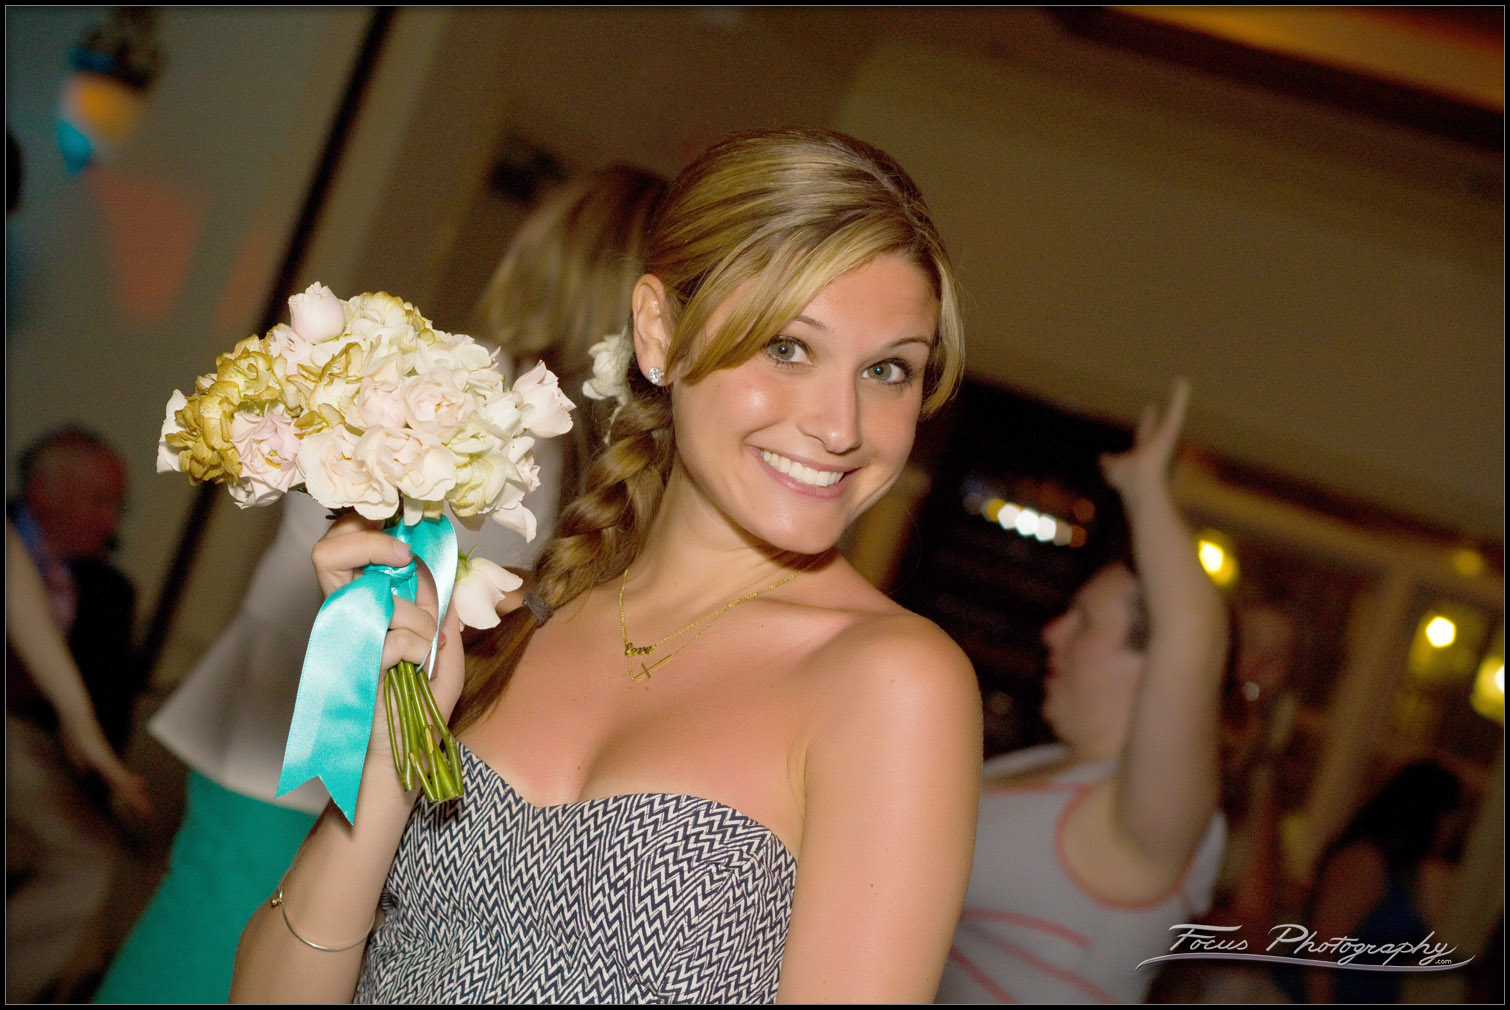 The girl who catches the bride's bouquet is traditionally considered to be next to get married